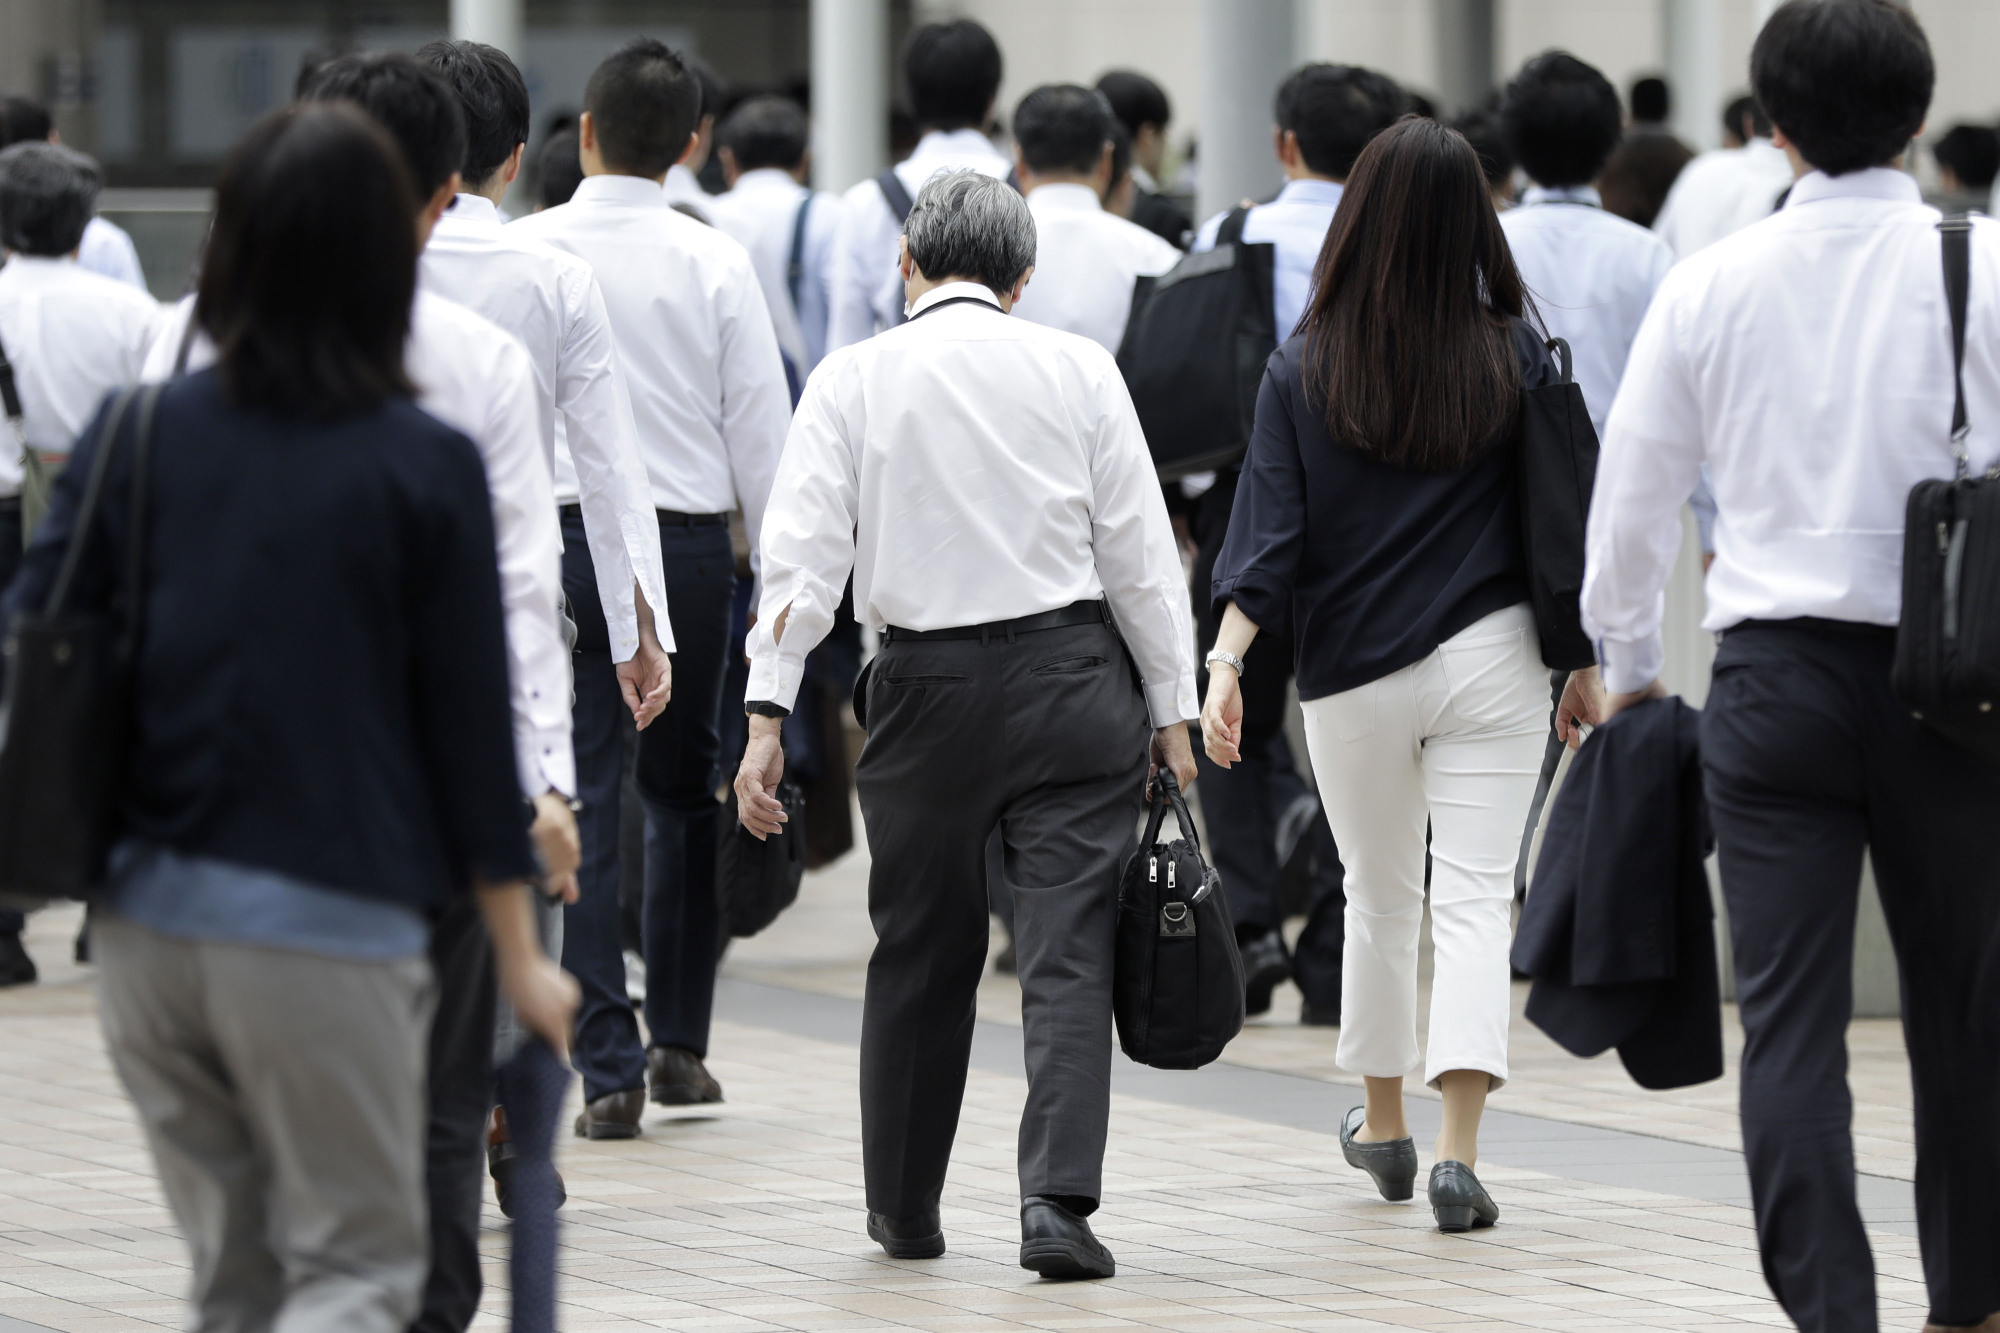 People aged 50 or above and out of Japan's workforce could increase 29 percent to 59 per 100 people by 2050, the OECD says in a new report. | BLOOMBERG